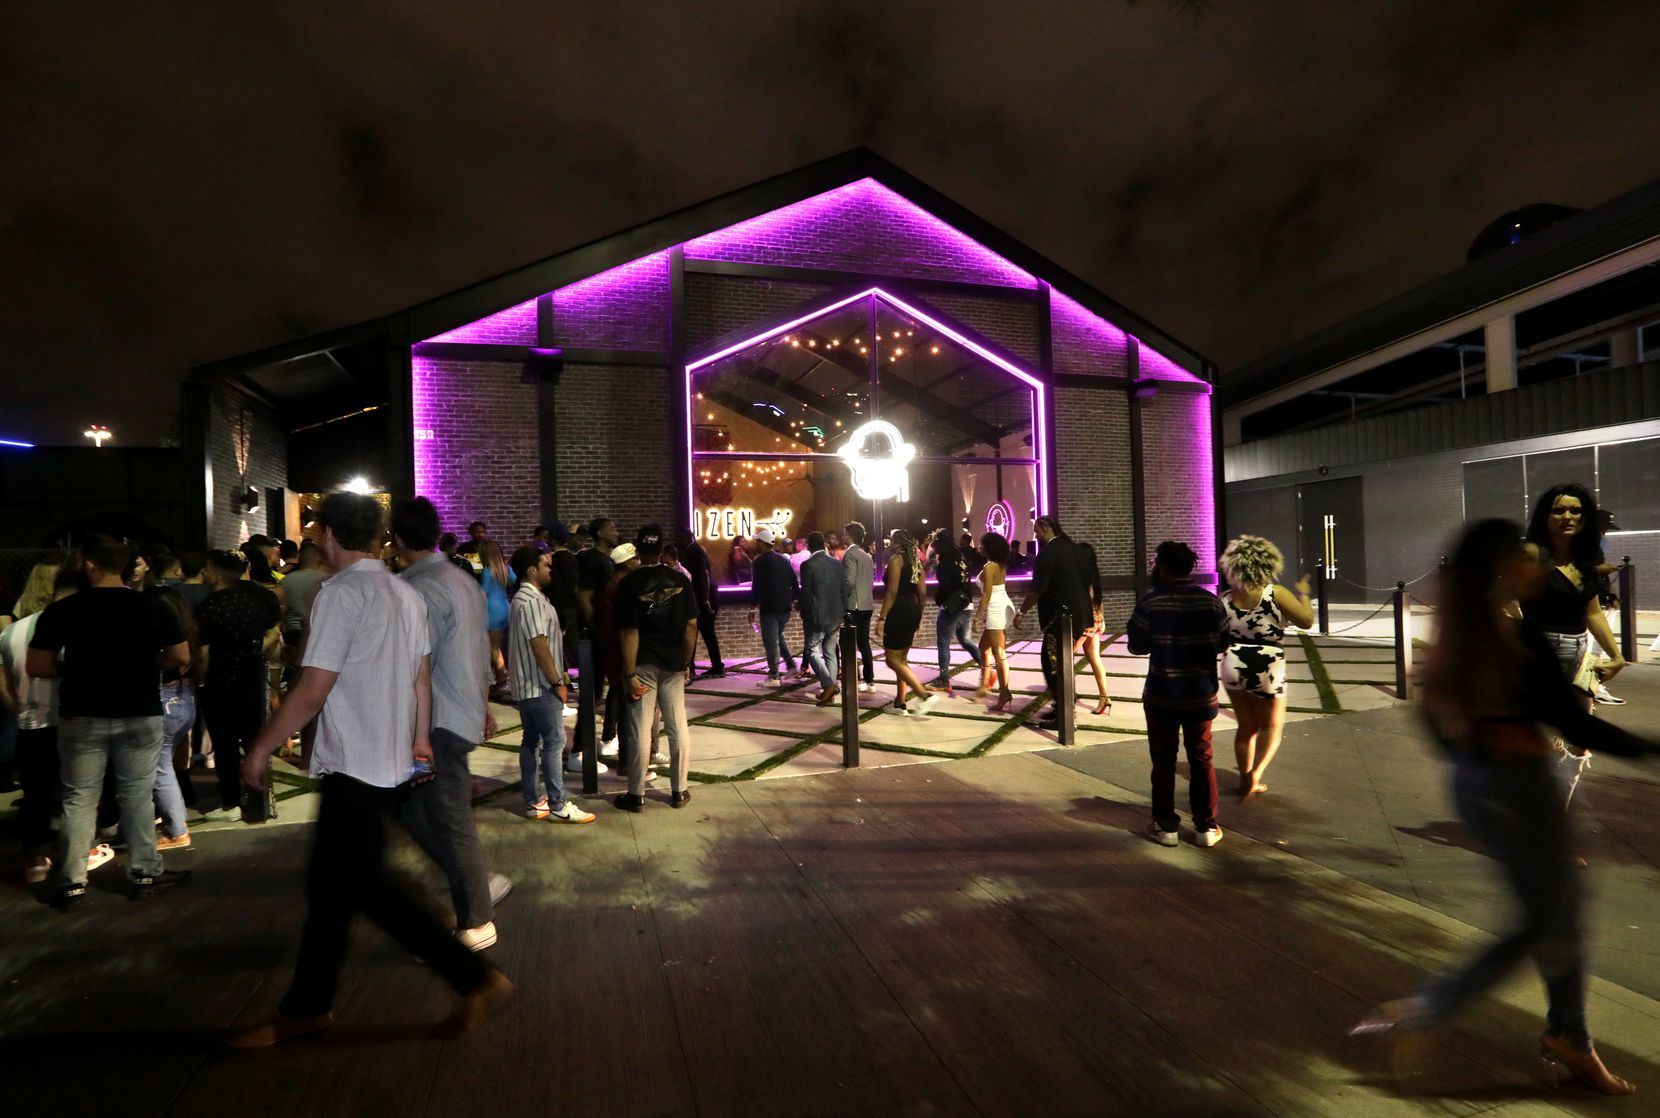 The new Citizen is much larger than the now-closed original Citizen nightclub in Uptown Dallas.